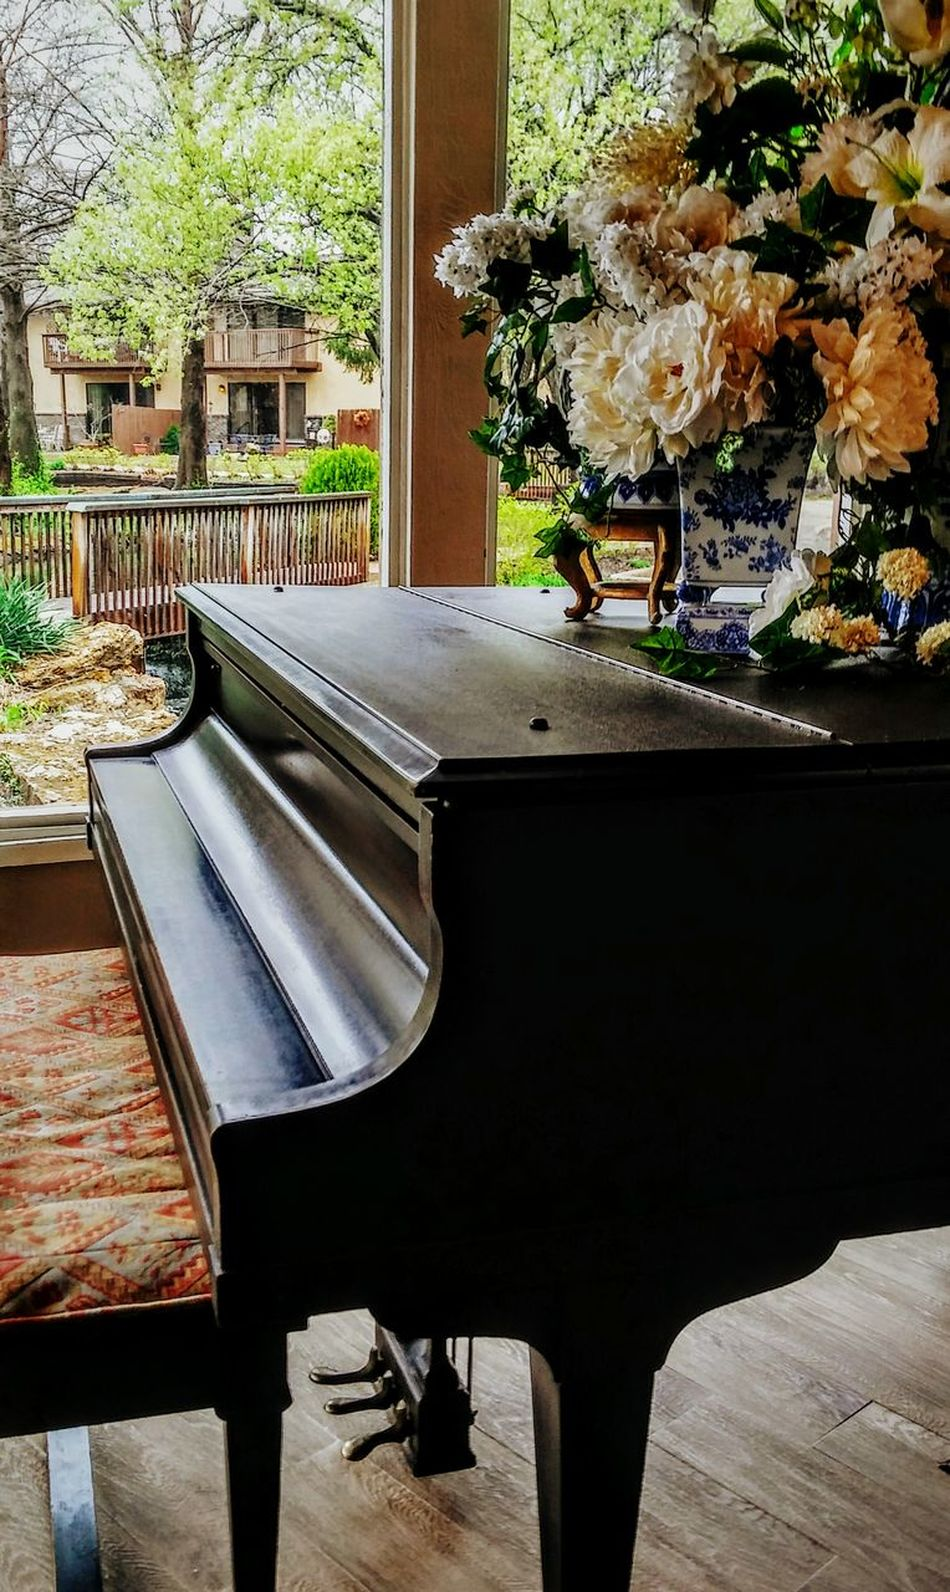 Baby grand piano Tree Water Day No People Piano Irwin Collection Eyem Gallery Rainy Days☔ Windows View Flowers Of EyeEm Eyem Gallery Landscape Eyeemphoto Landscape Irwin Collection Spring Is Coming